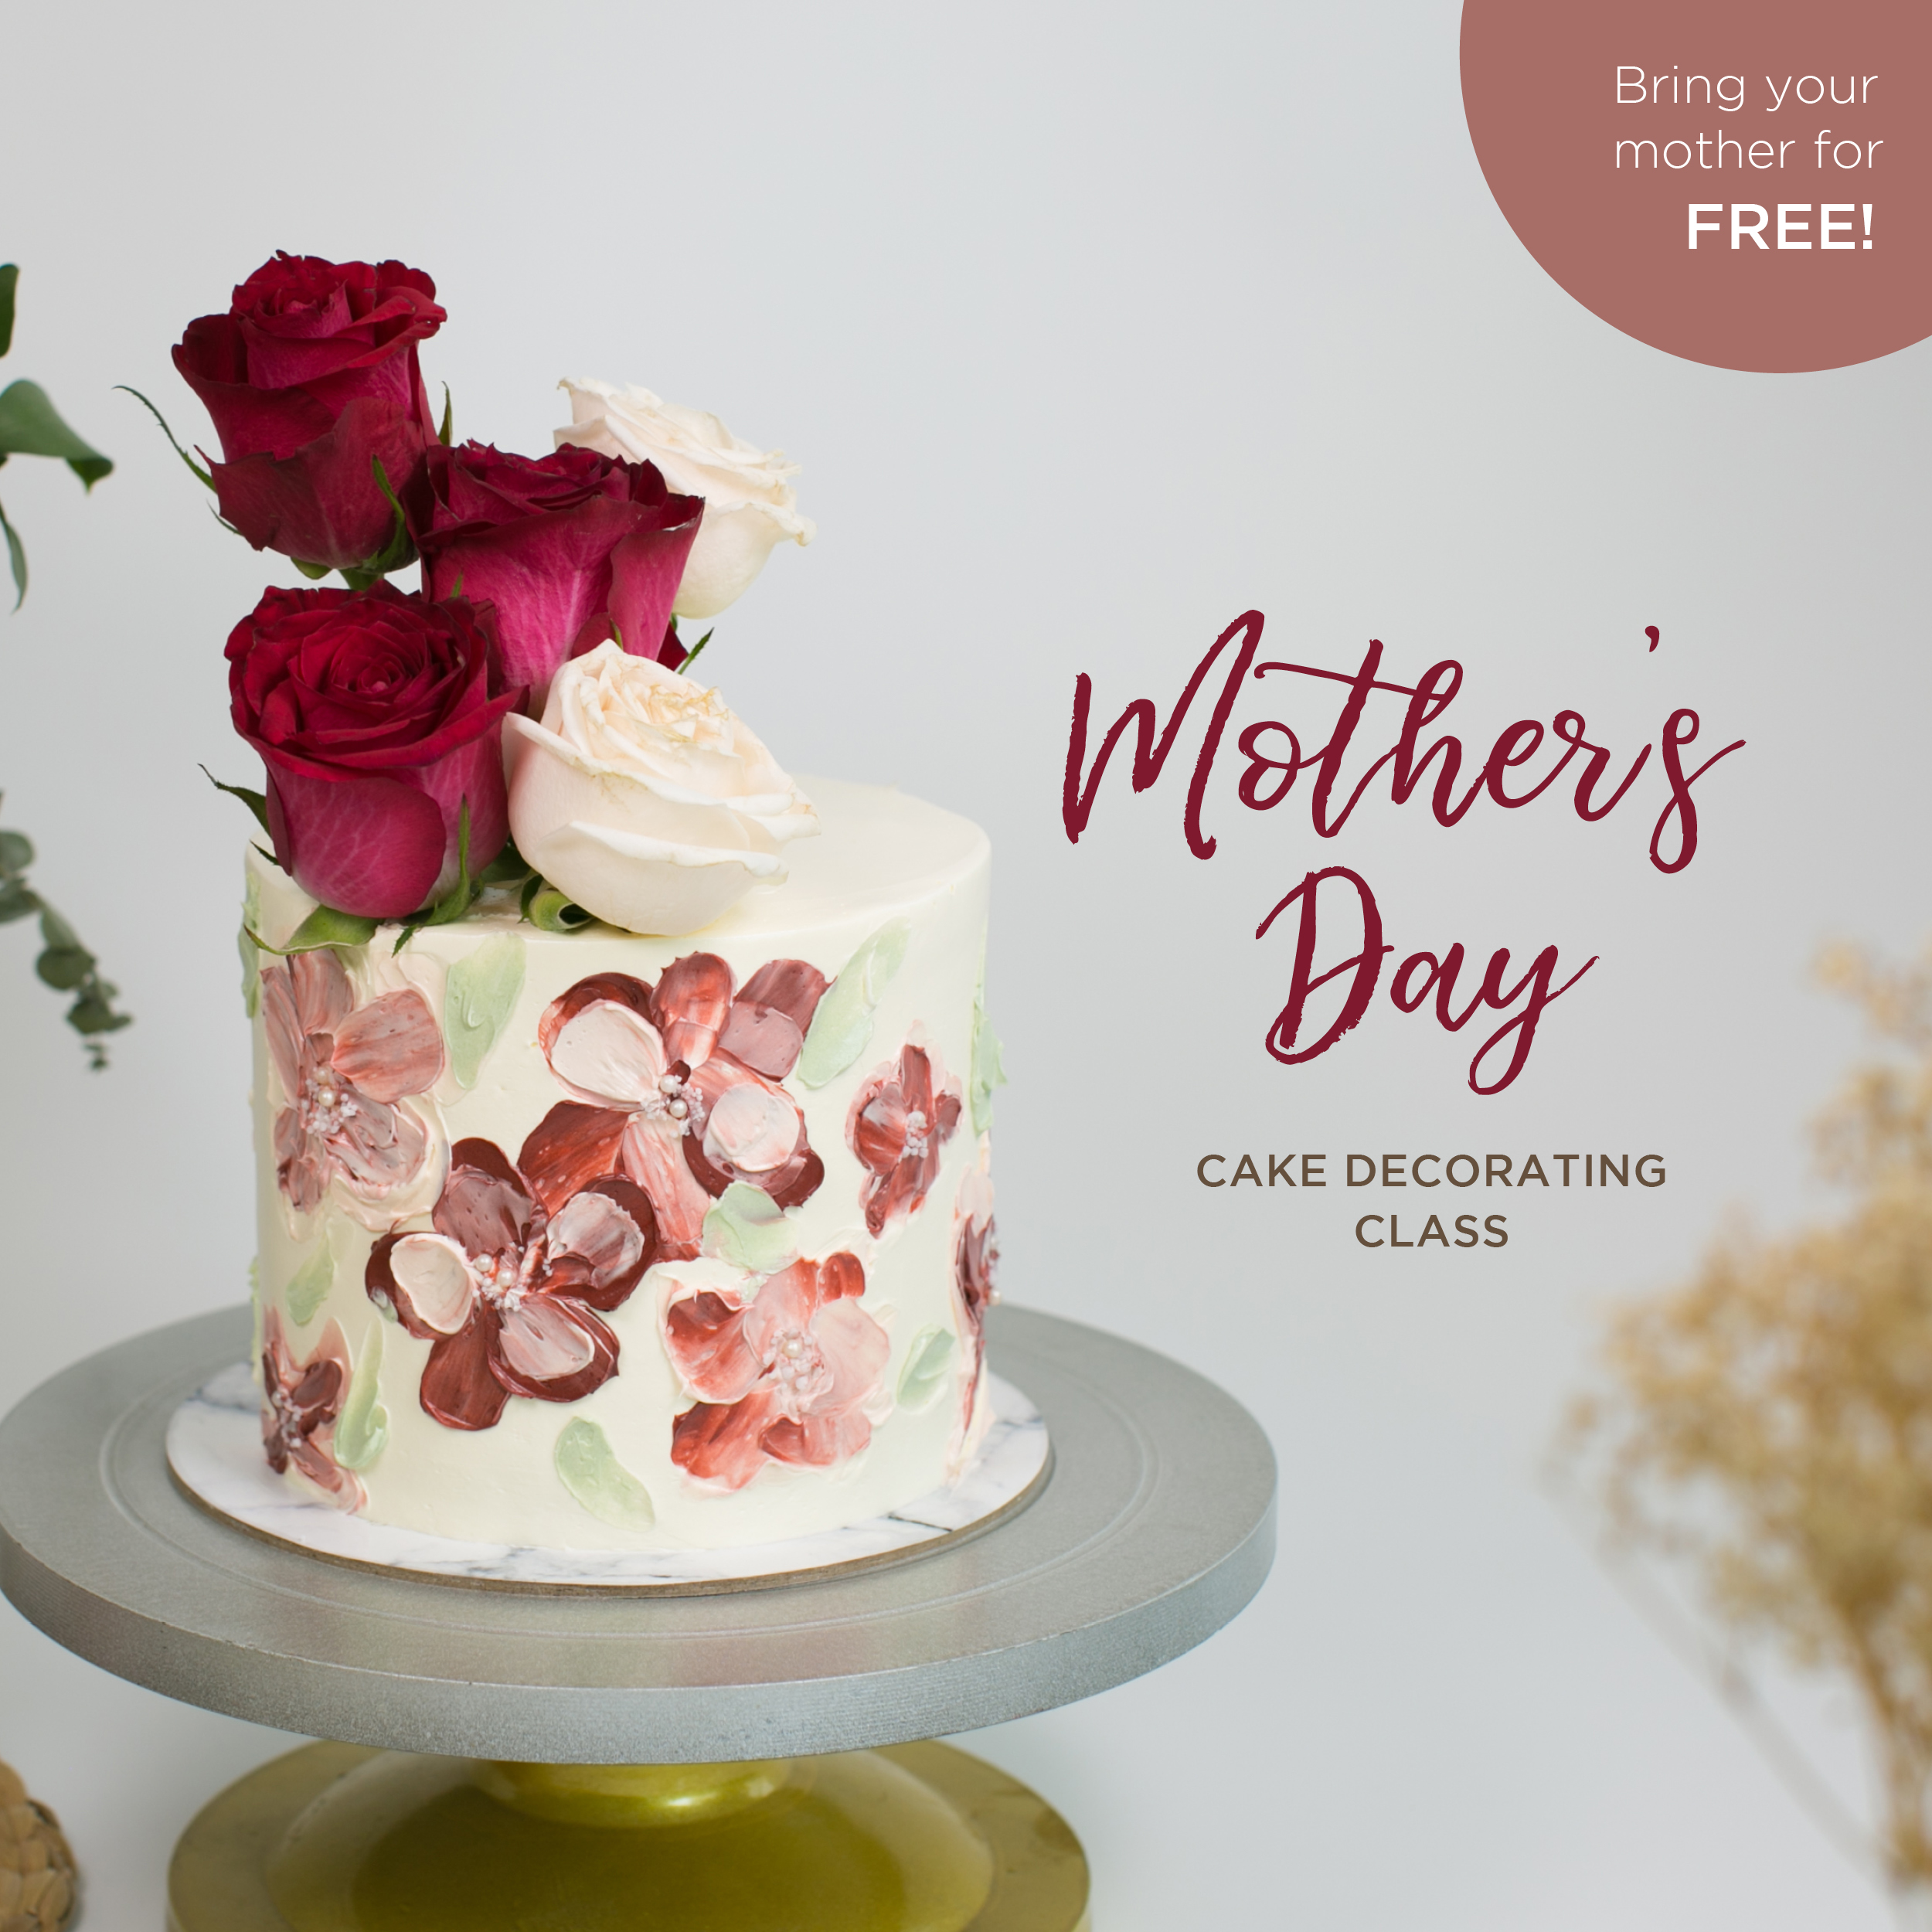 Mother's Day Cake Decorating Class